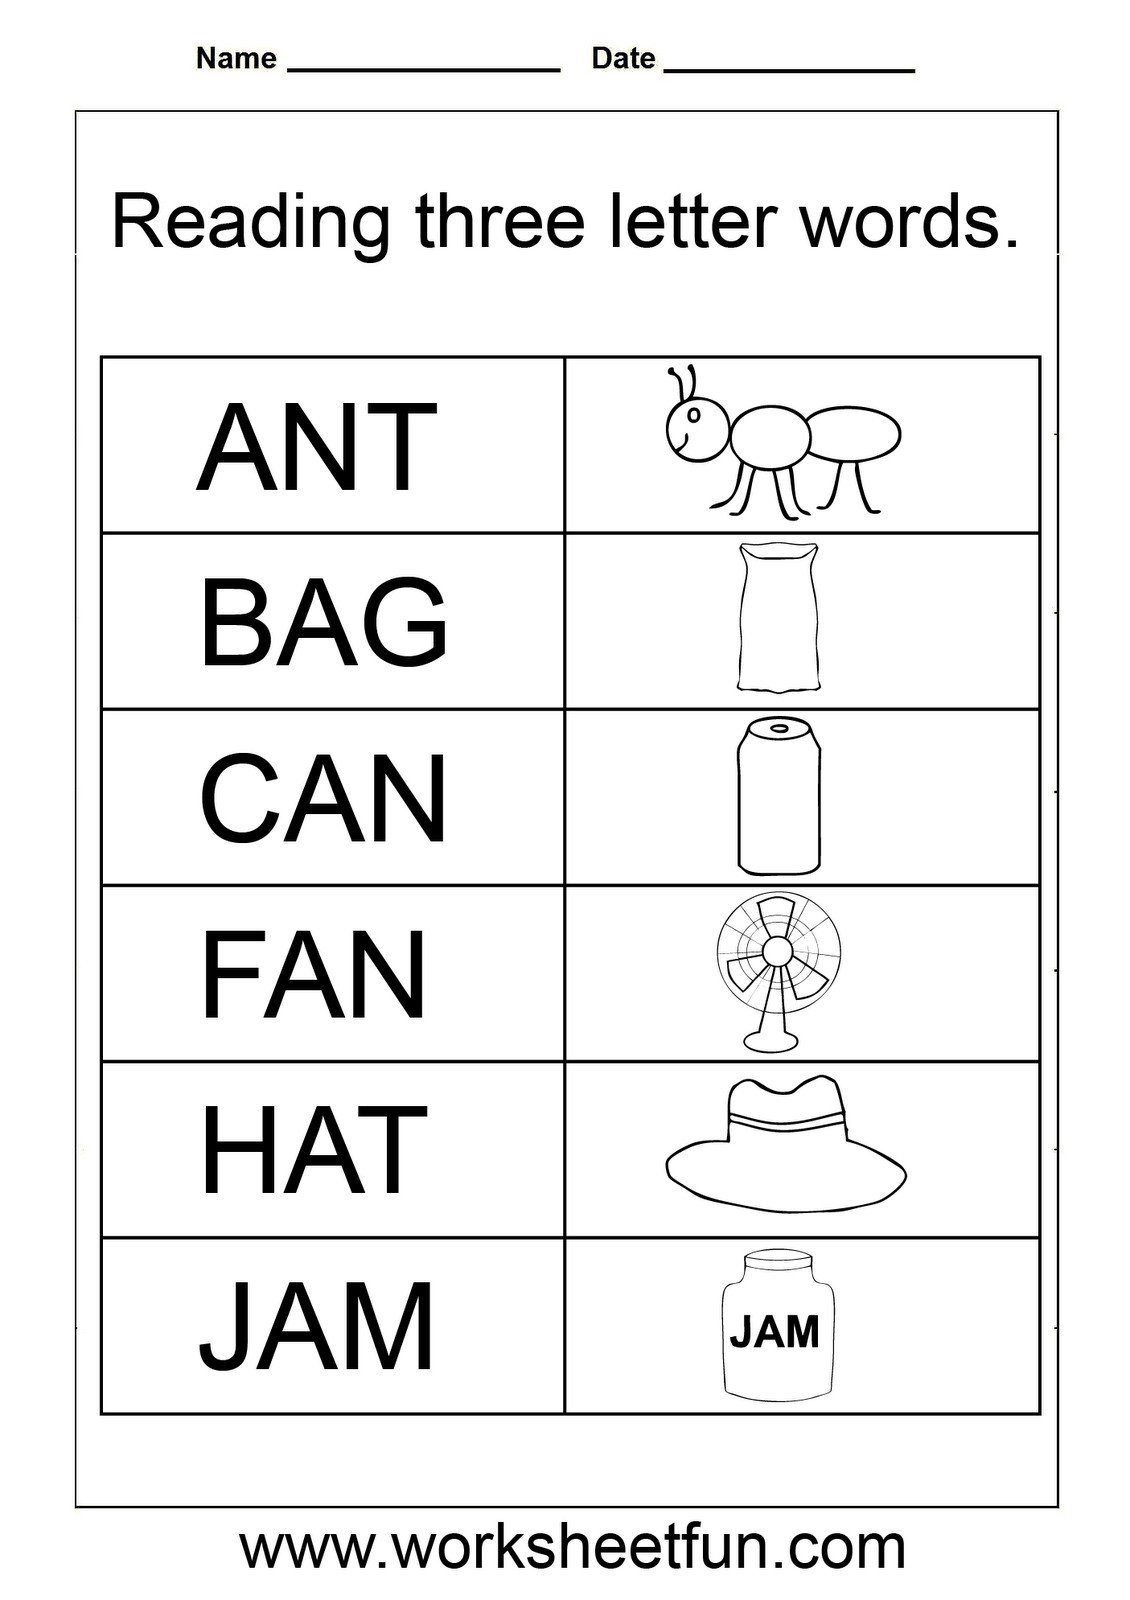 3 letter words worksheets for kindergarten spelling with alphabet worksheets for ukg